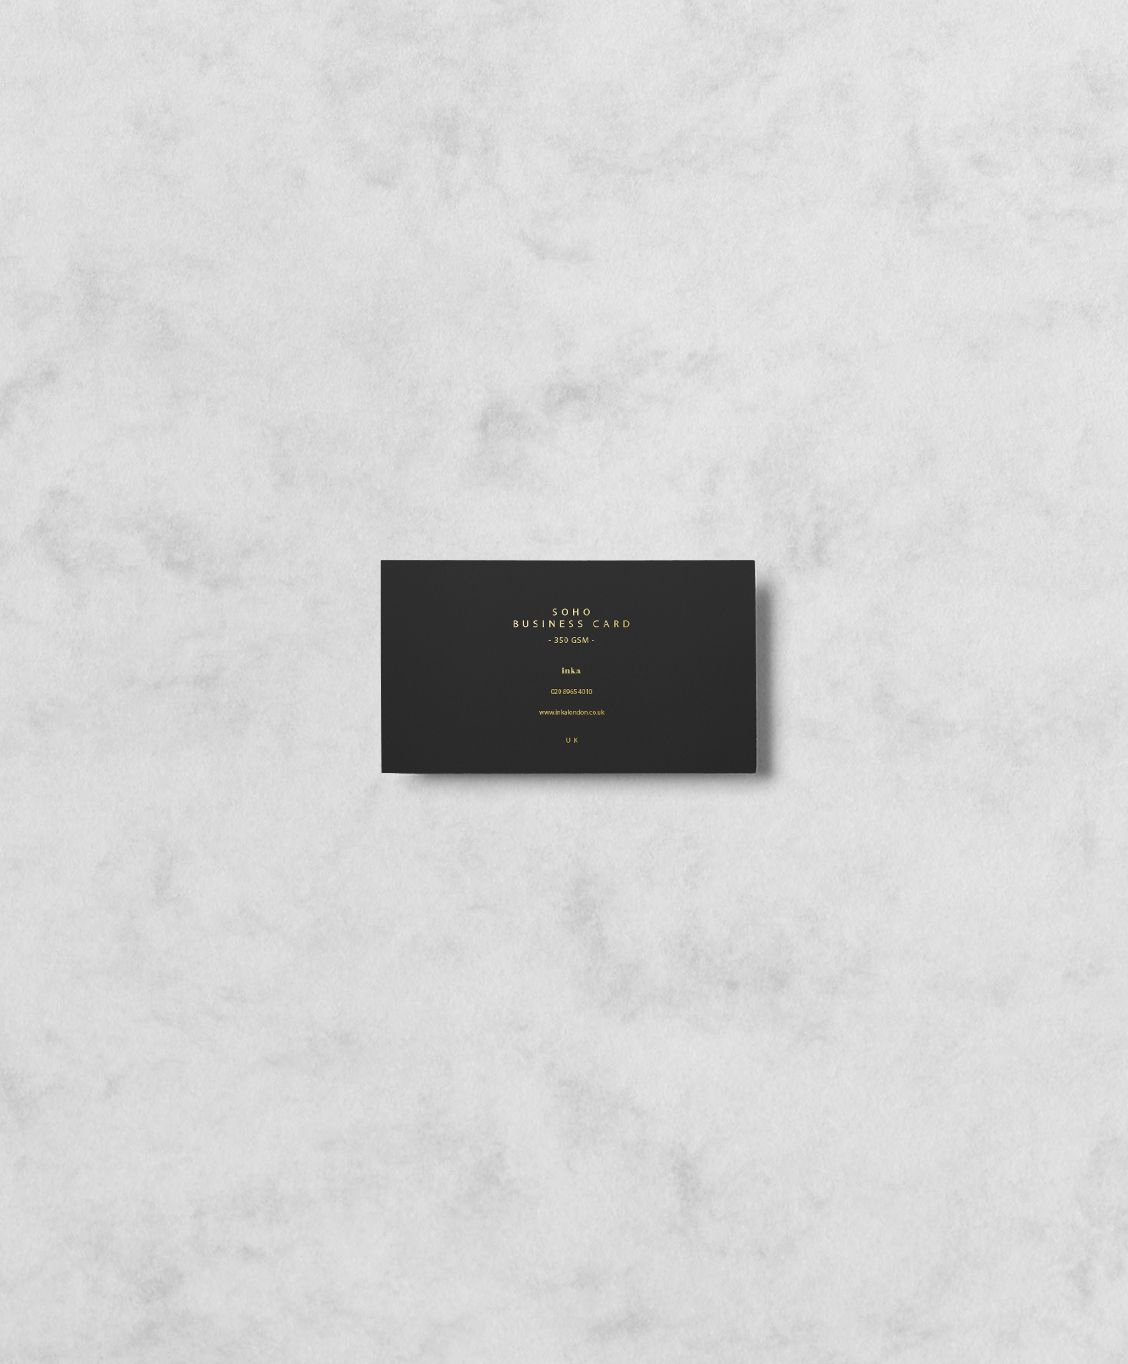 Gold foil business cards Colorplan Ebony GF Smith | BRANDING ...